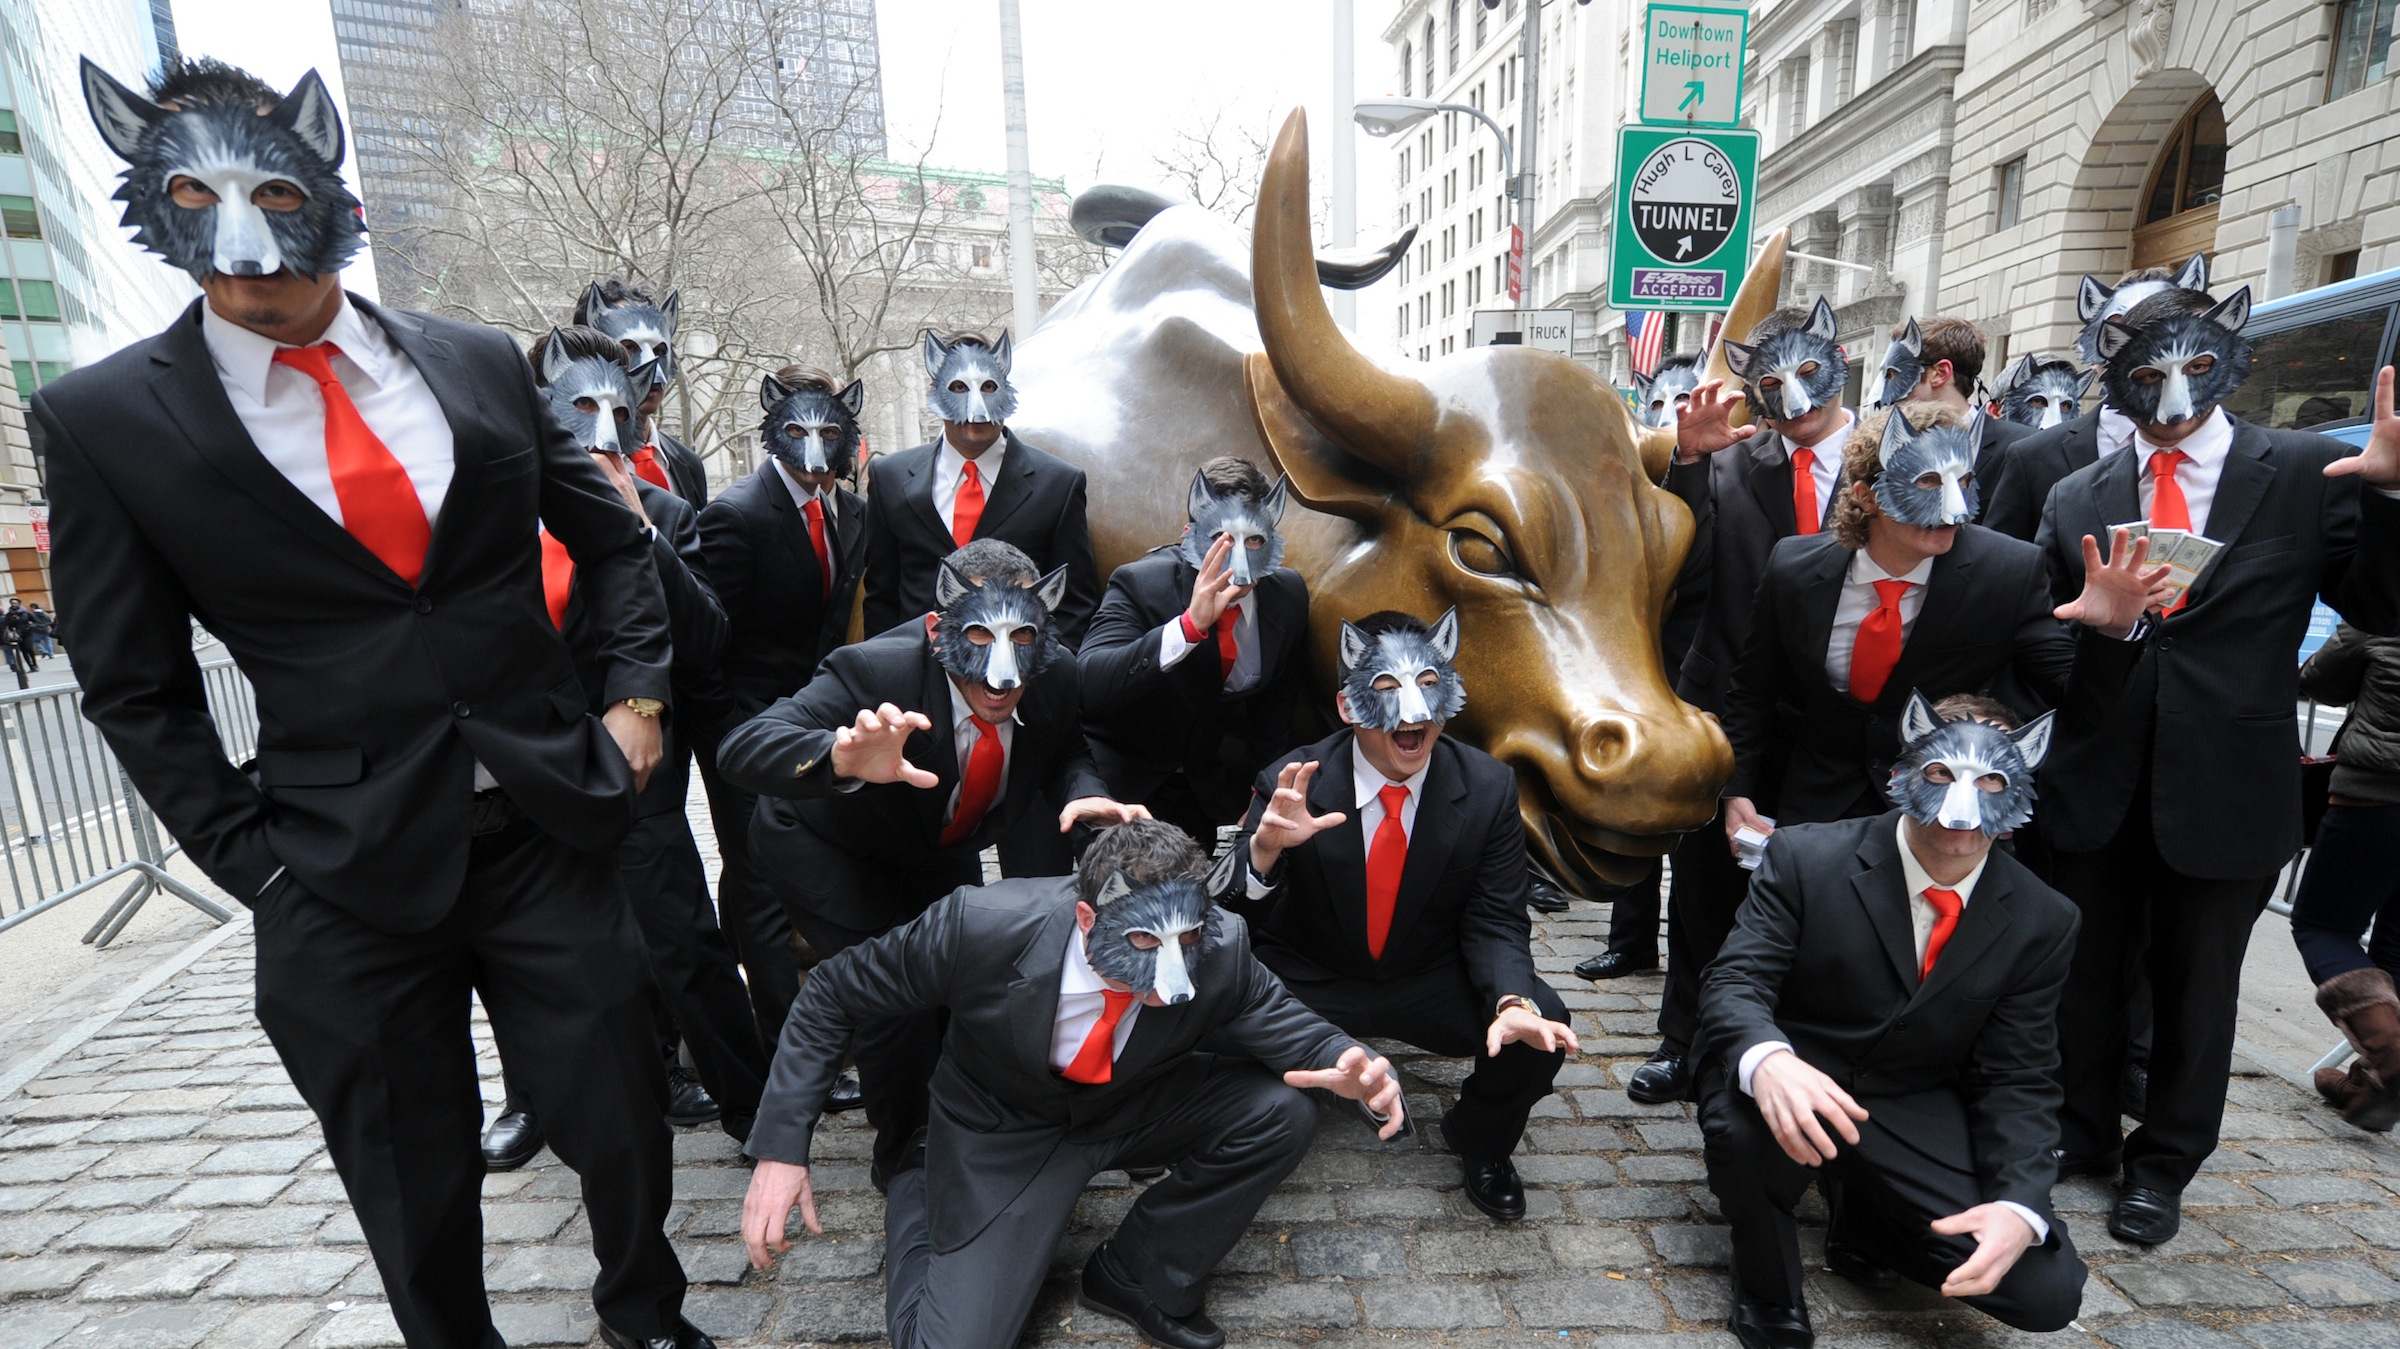 """IMAGE DISTRIBUTED FOR PARAMOUNT PICTURES - A pack of """"wolves"""" surround the Wall Street Bull, Tuesday, March 25, 2014, in New York, to celebrate the Blu-ray release of the hit movie The Wolf of Wall Street. (Photo by Diane Bondareff/Invision for Paramount Pictures/AP Images)"""